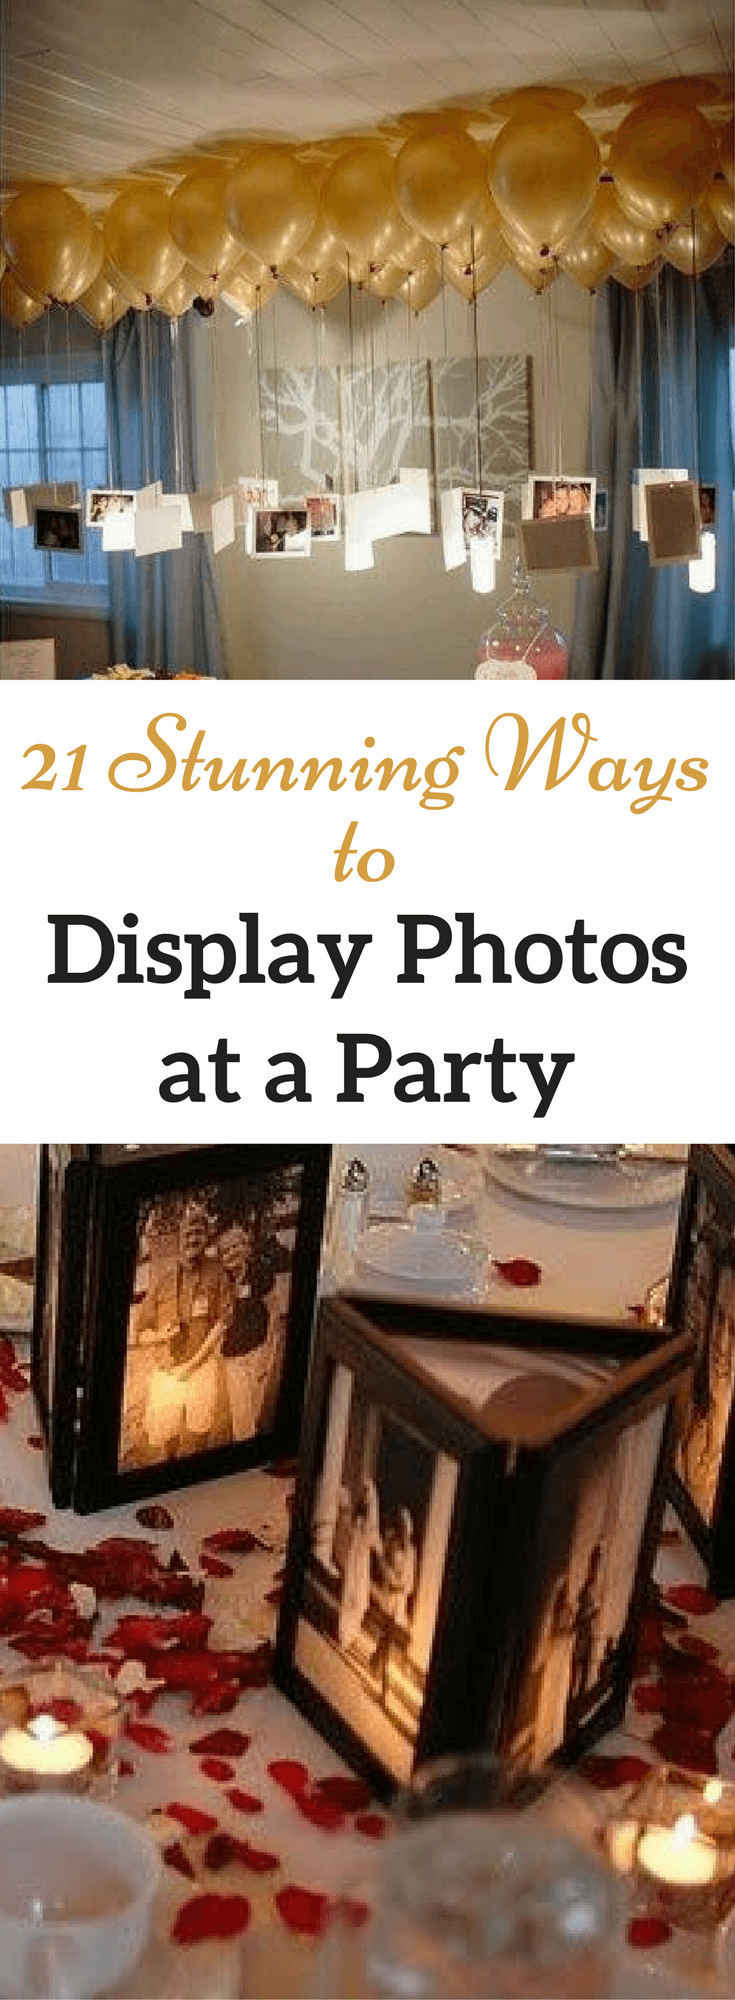 Looking for a clever way to display photos at a party? Check out these 21 easy picture display ideas for parties!